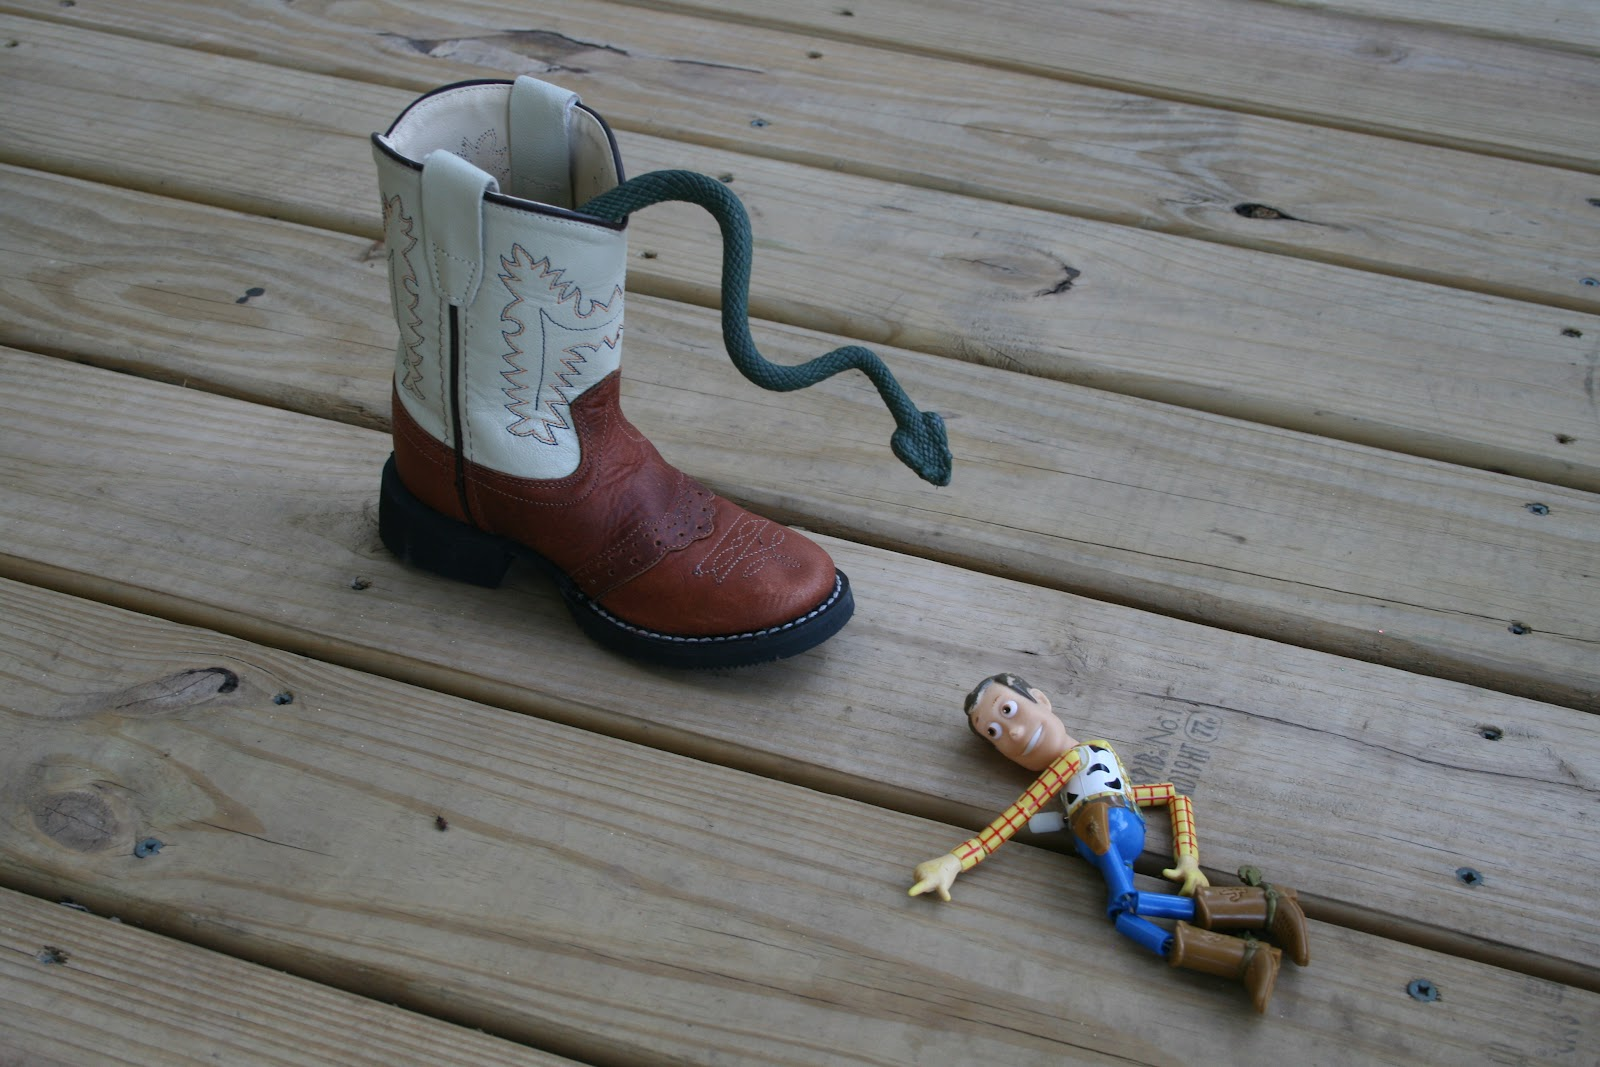 Go Momma!: there's a snake in my boot!